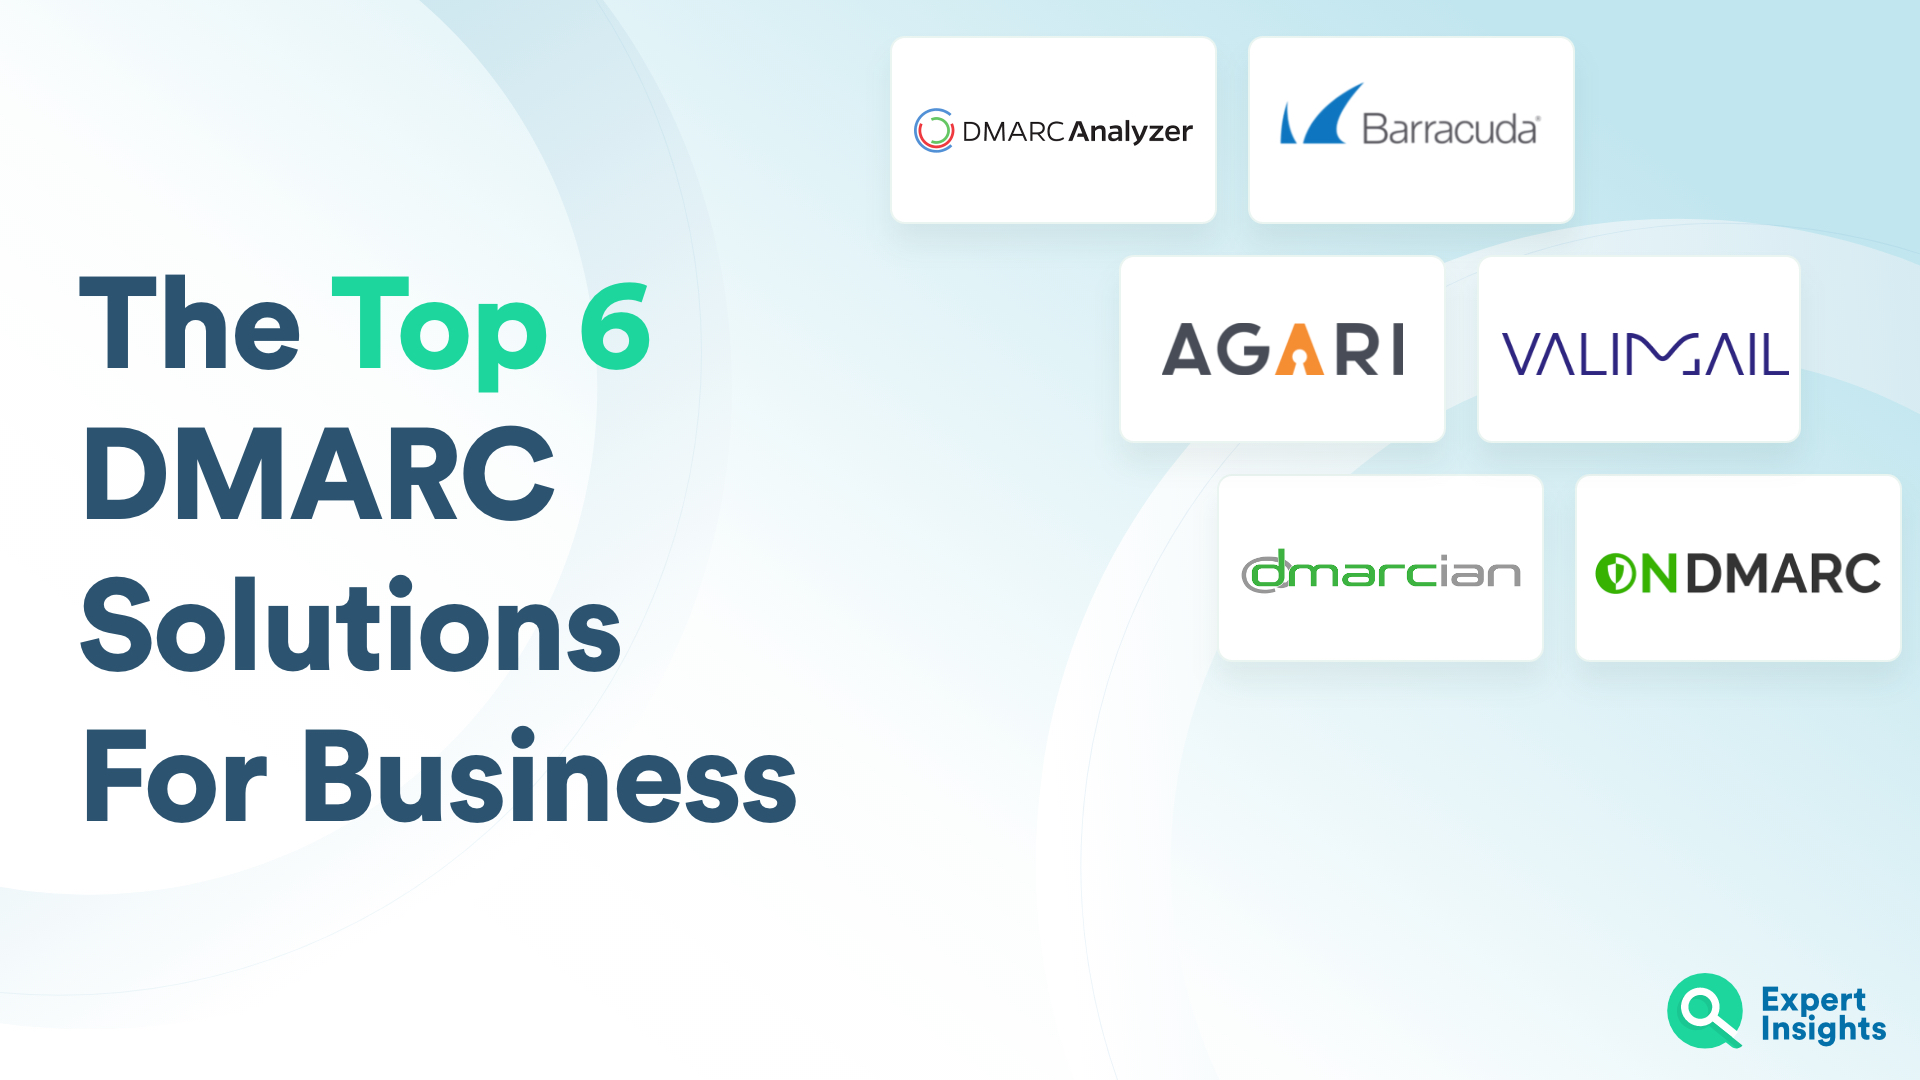 Top DMARC Solutions for Business